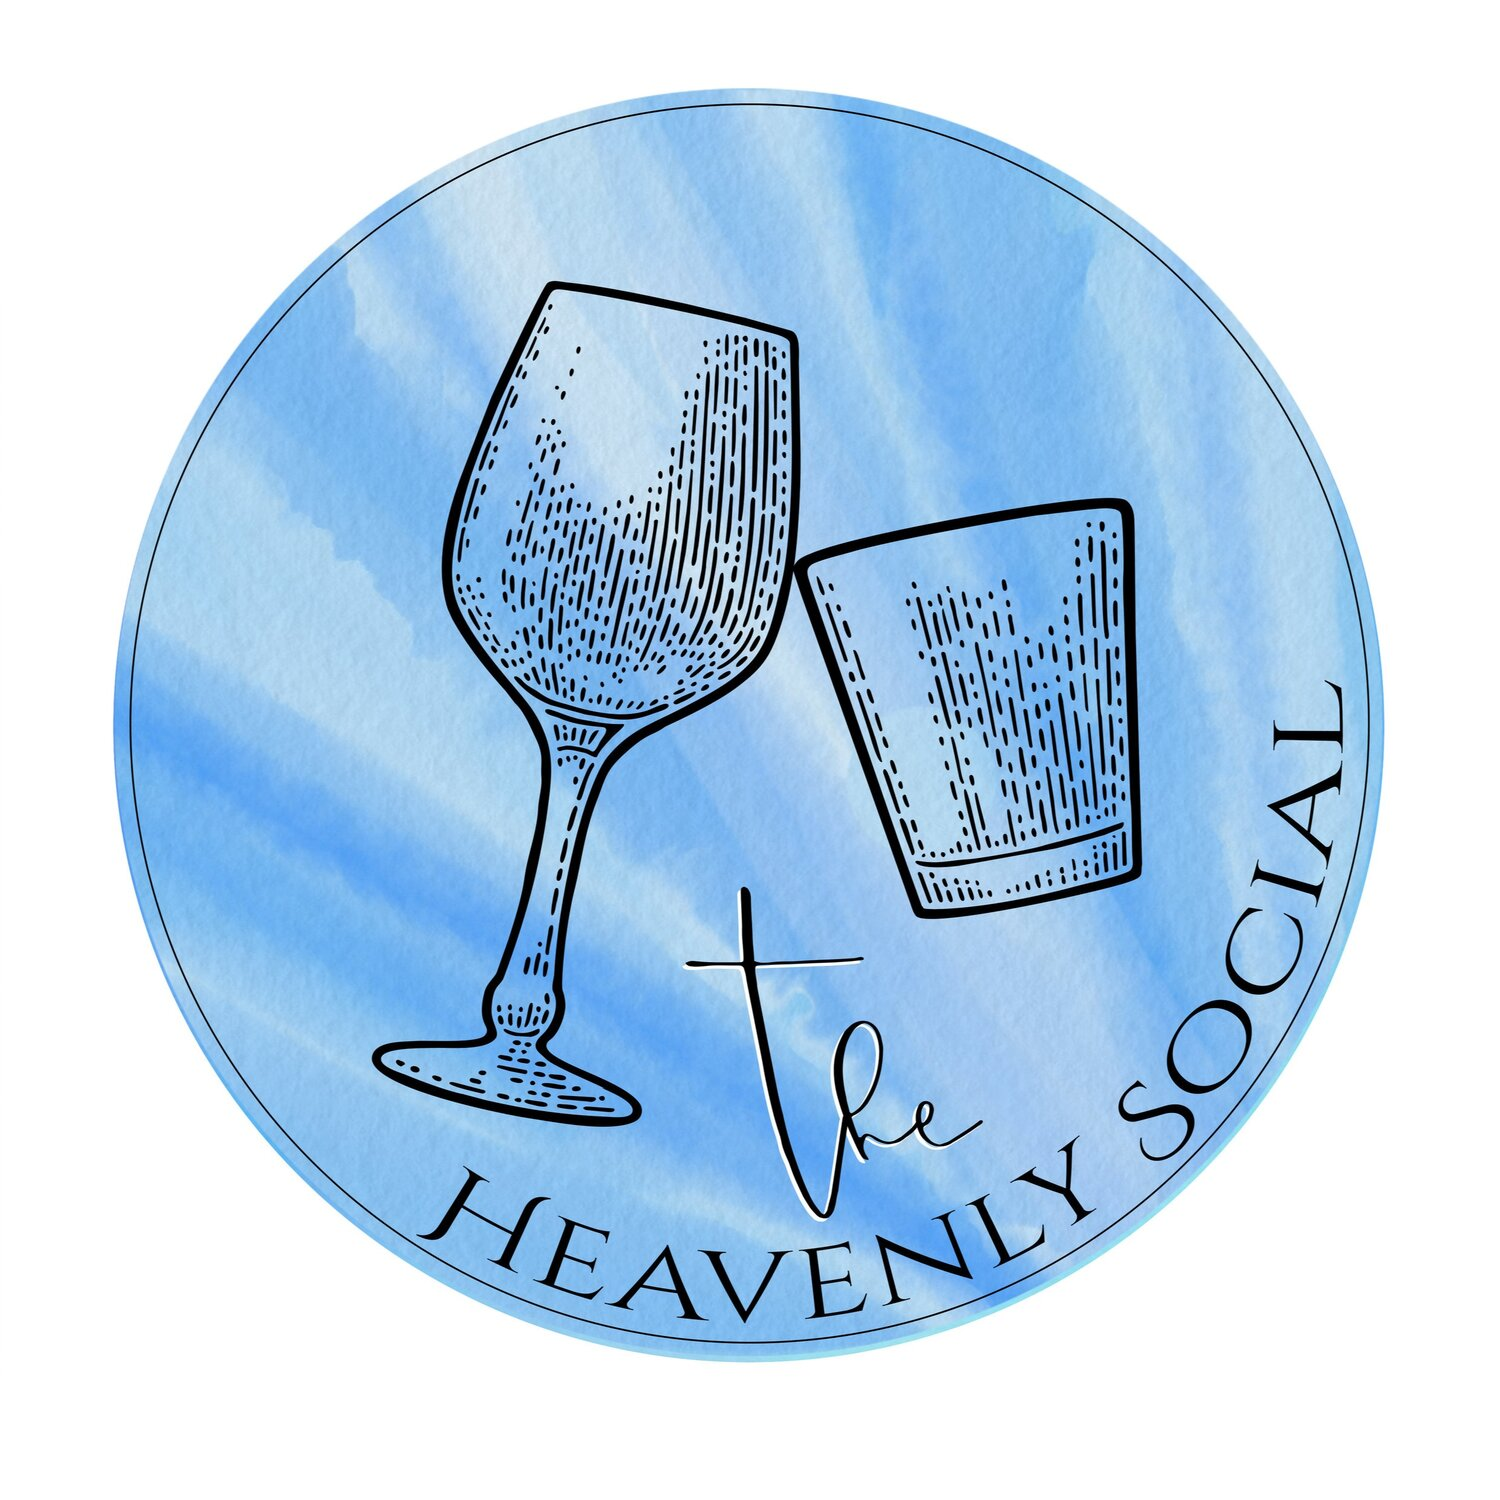 The Heavenly Social